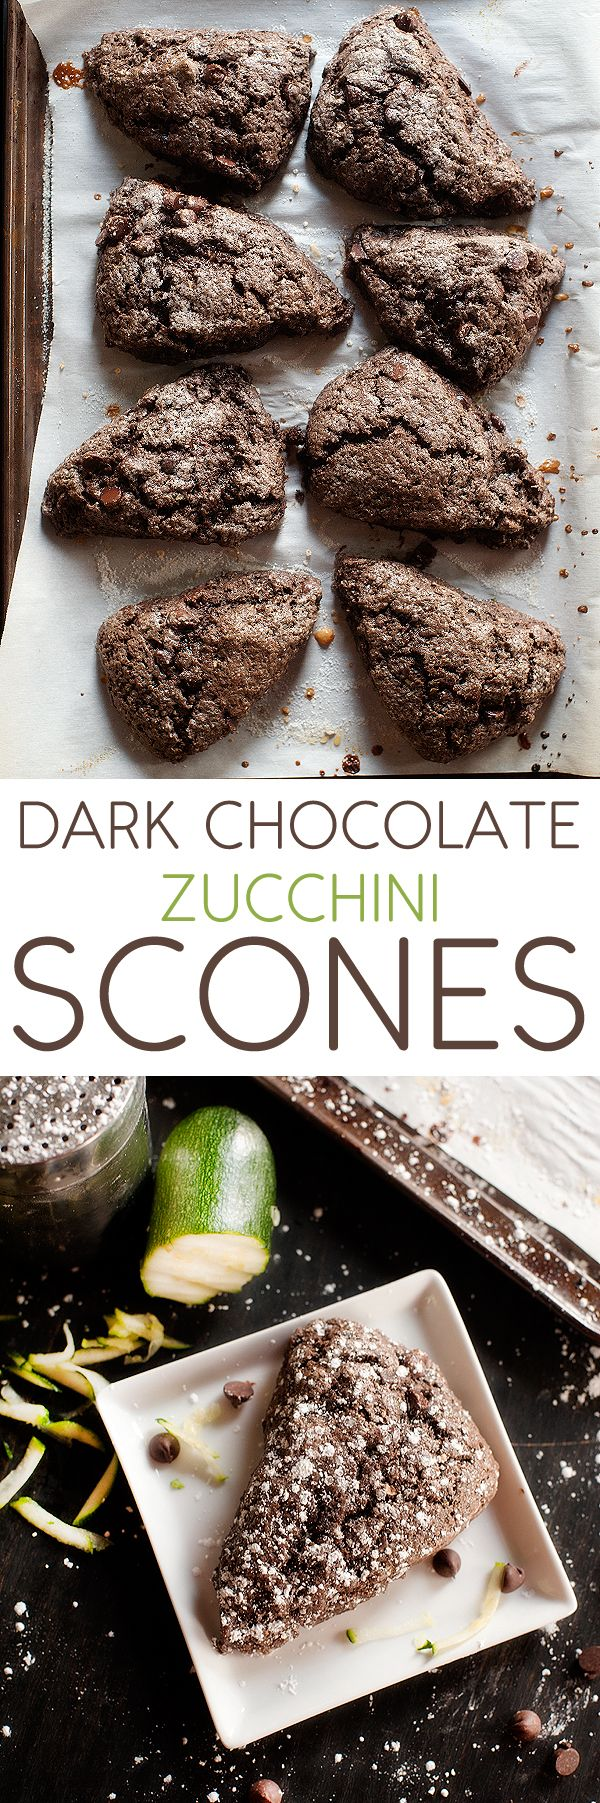 Dark Chocolate Zucchini Scones